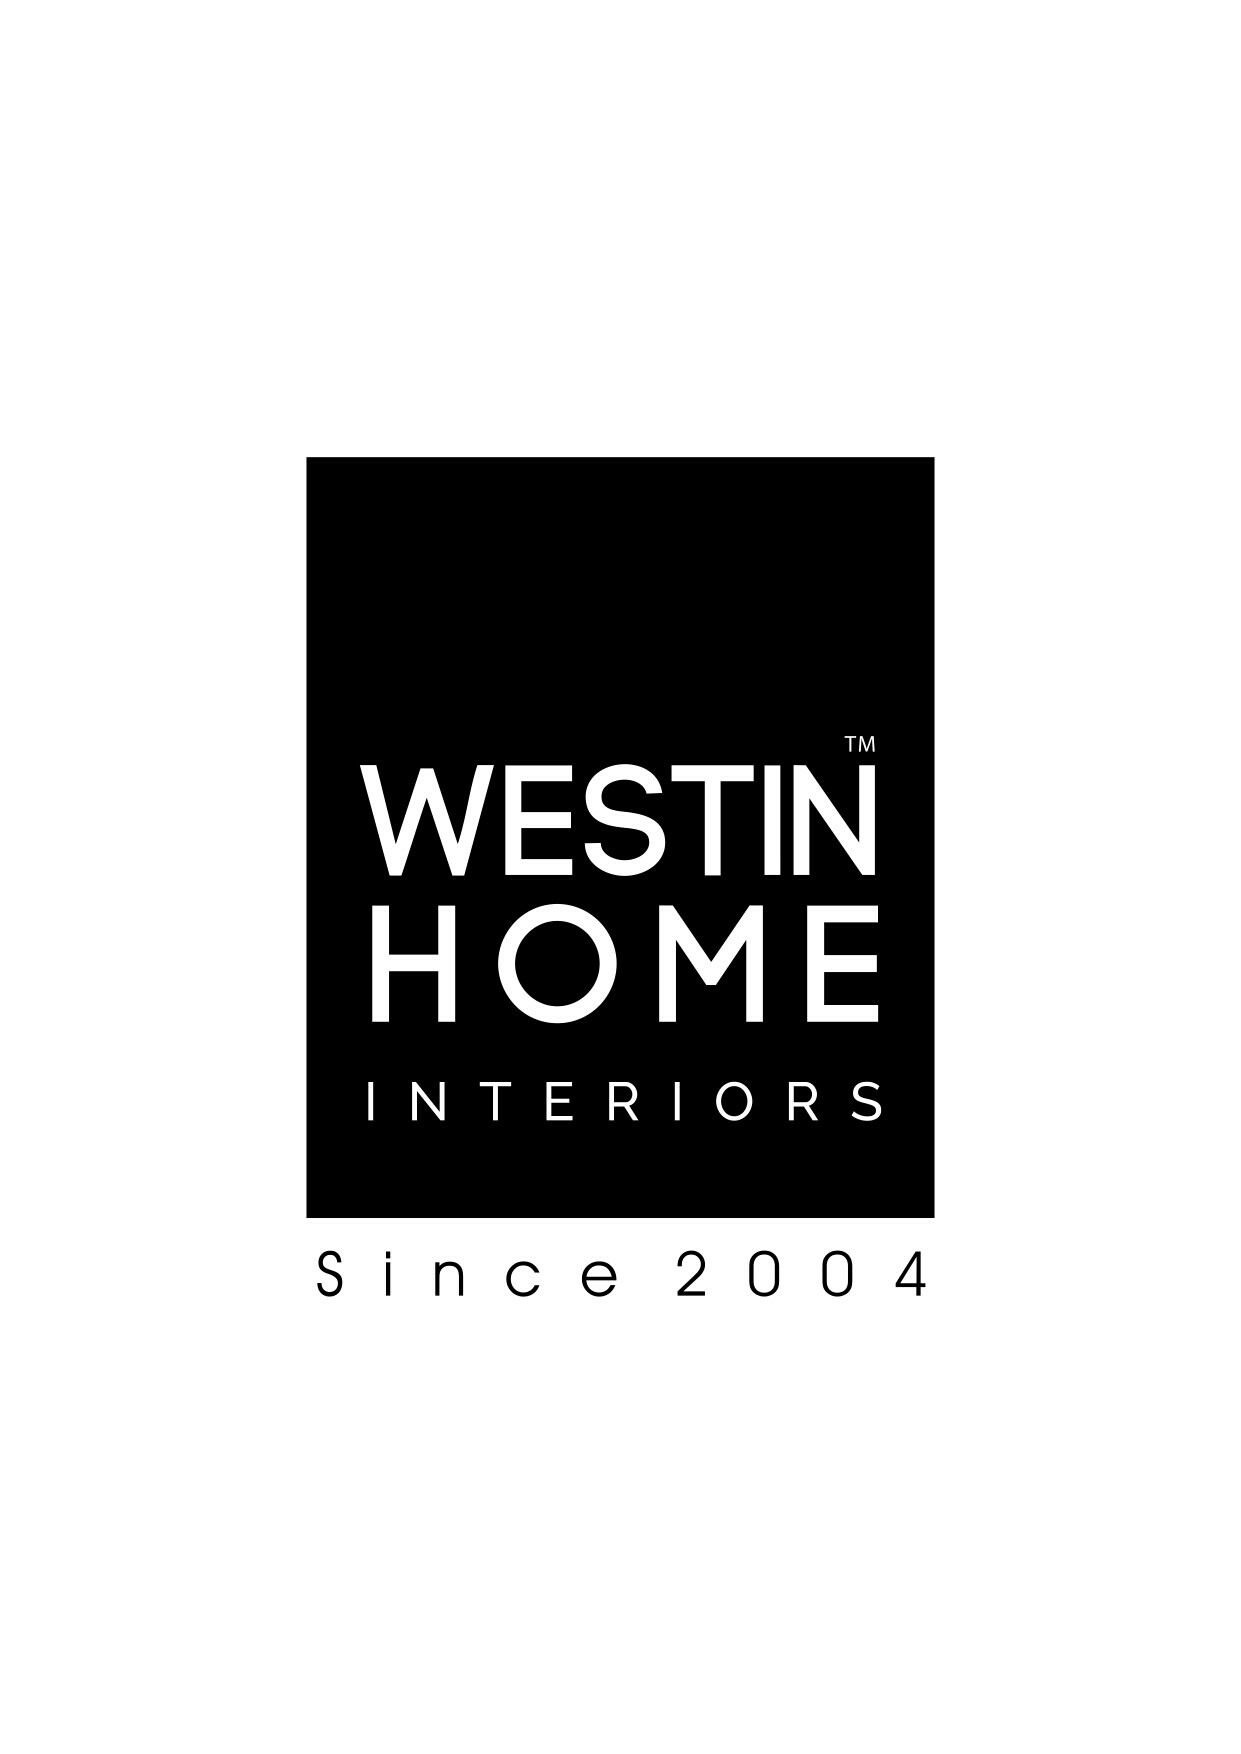 WESTIN HOME INTERIORS - logo